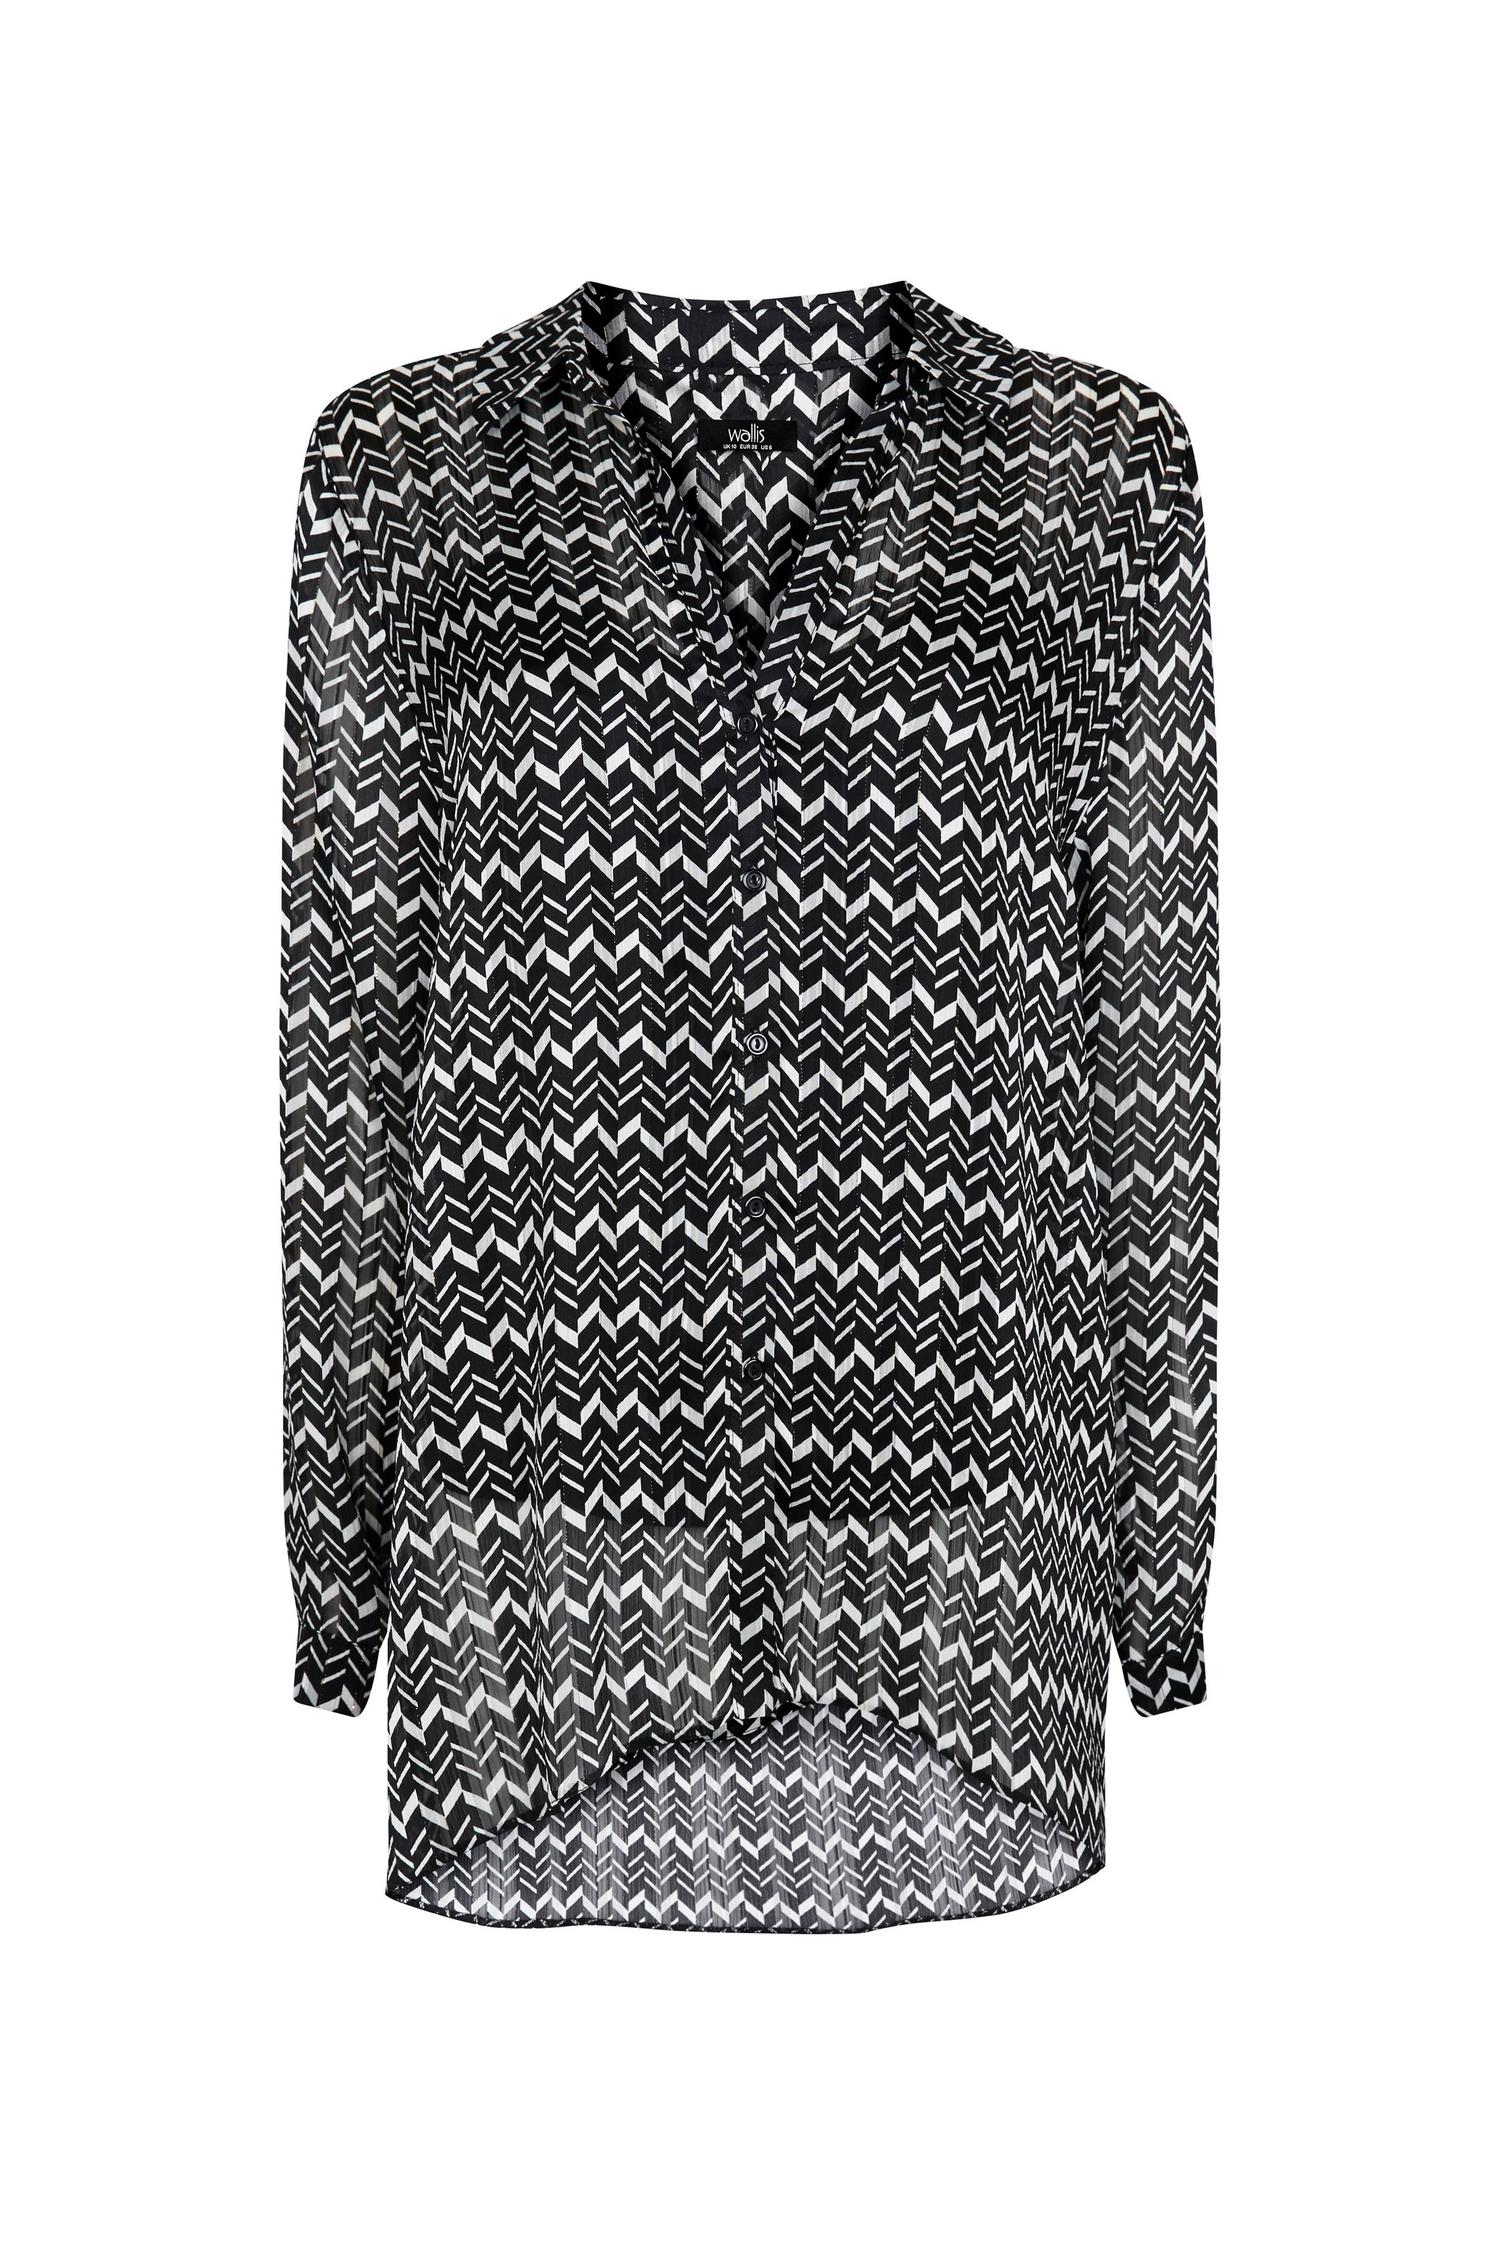 585 Tall Monochrome Printed Longline Shirt image number 4